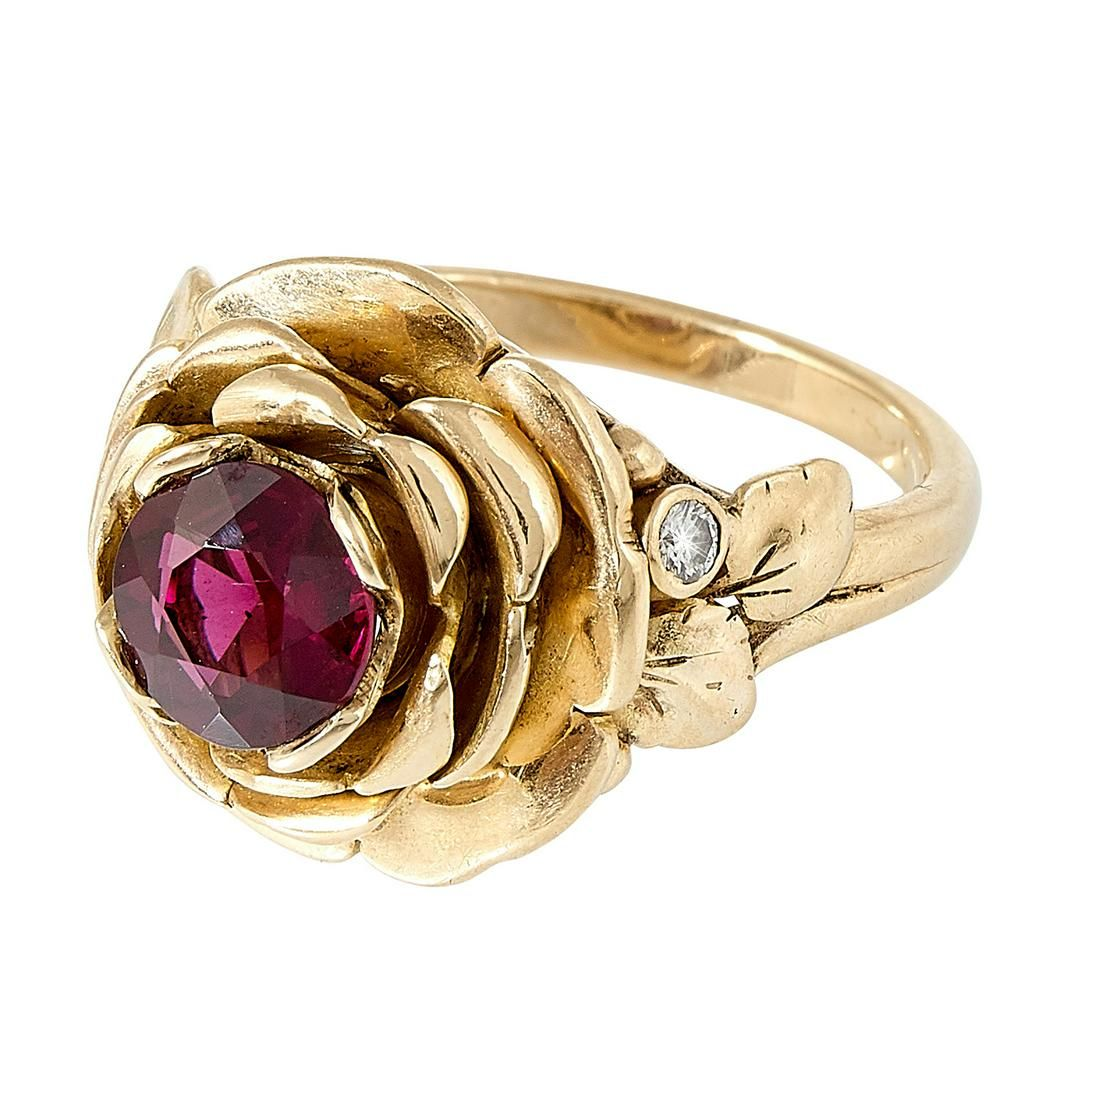 Edward Everett Oakes rose motif ladies ring